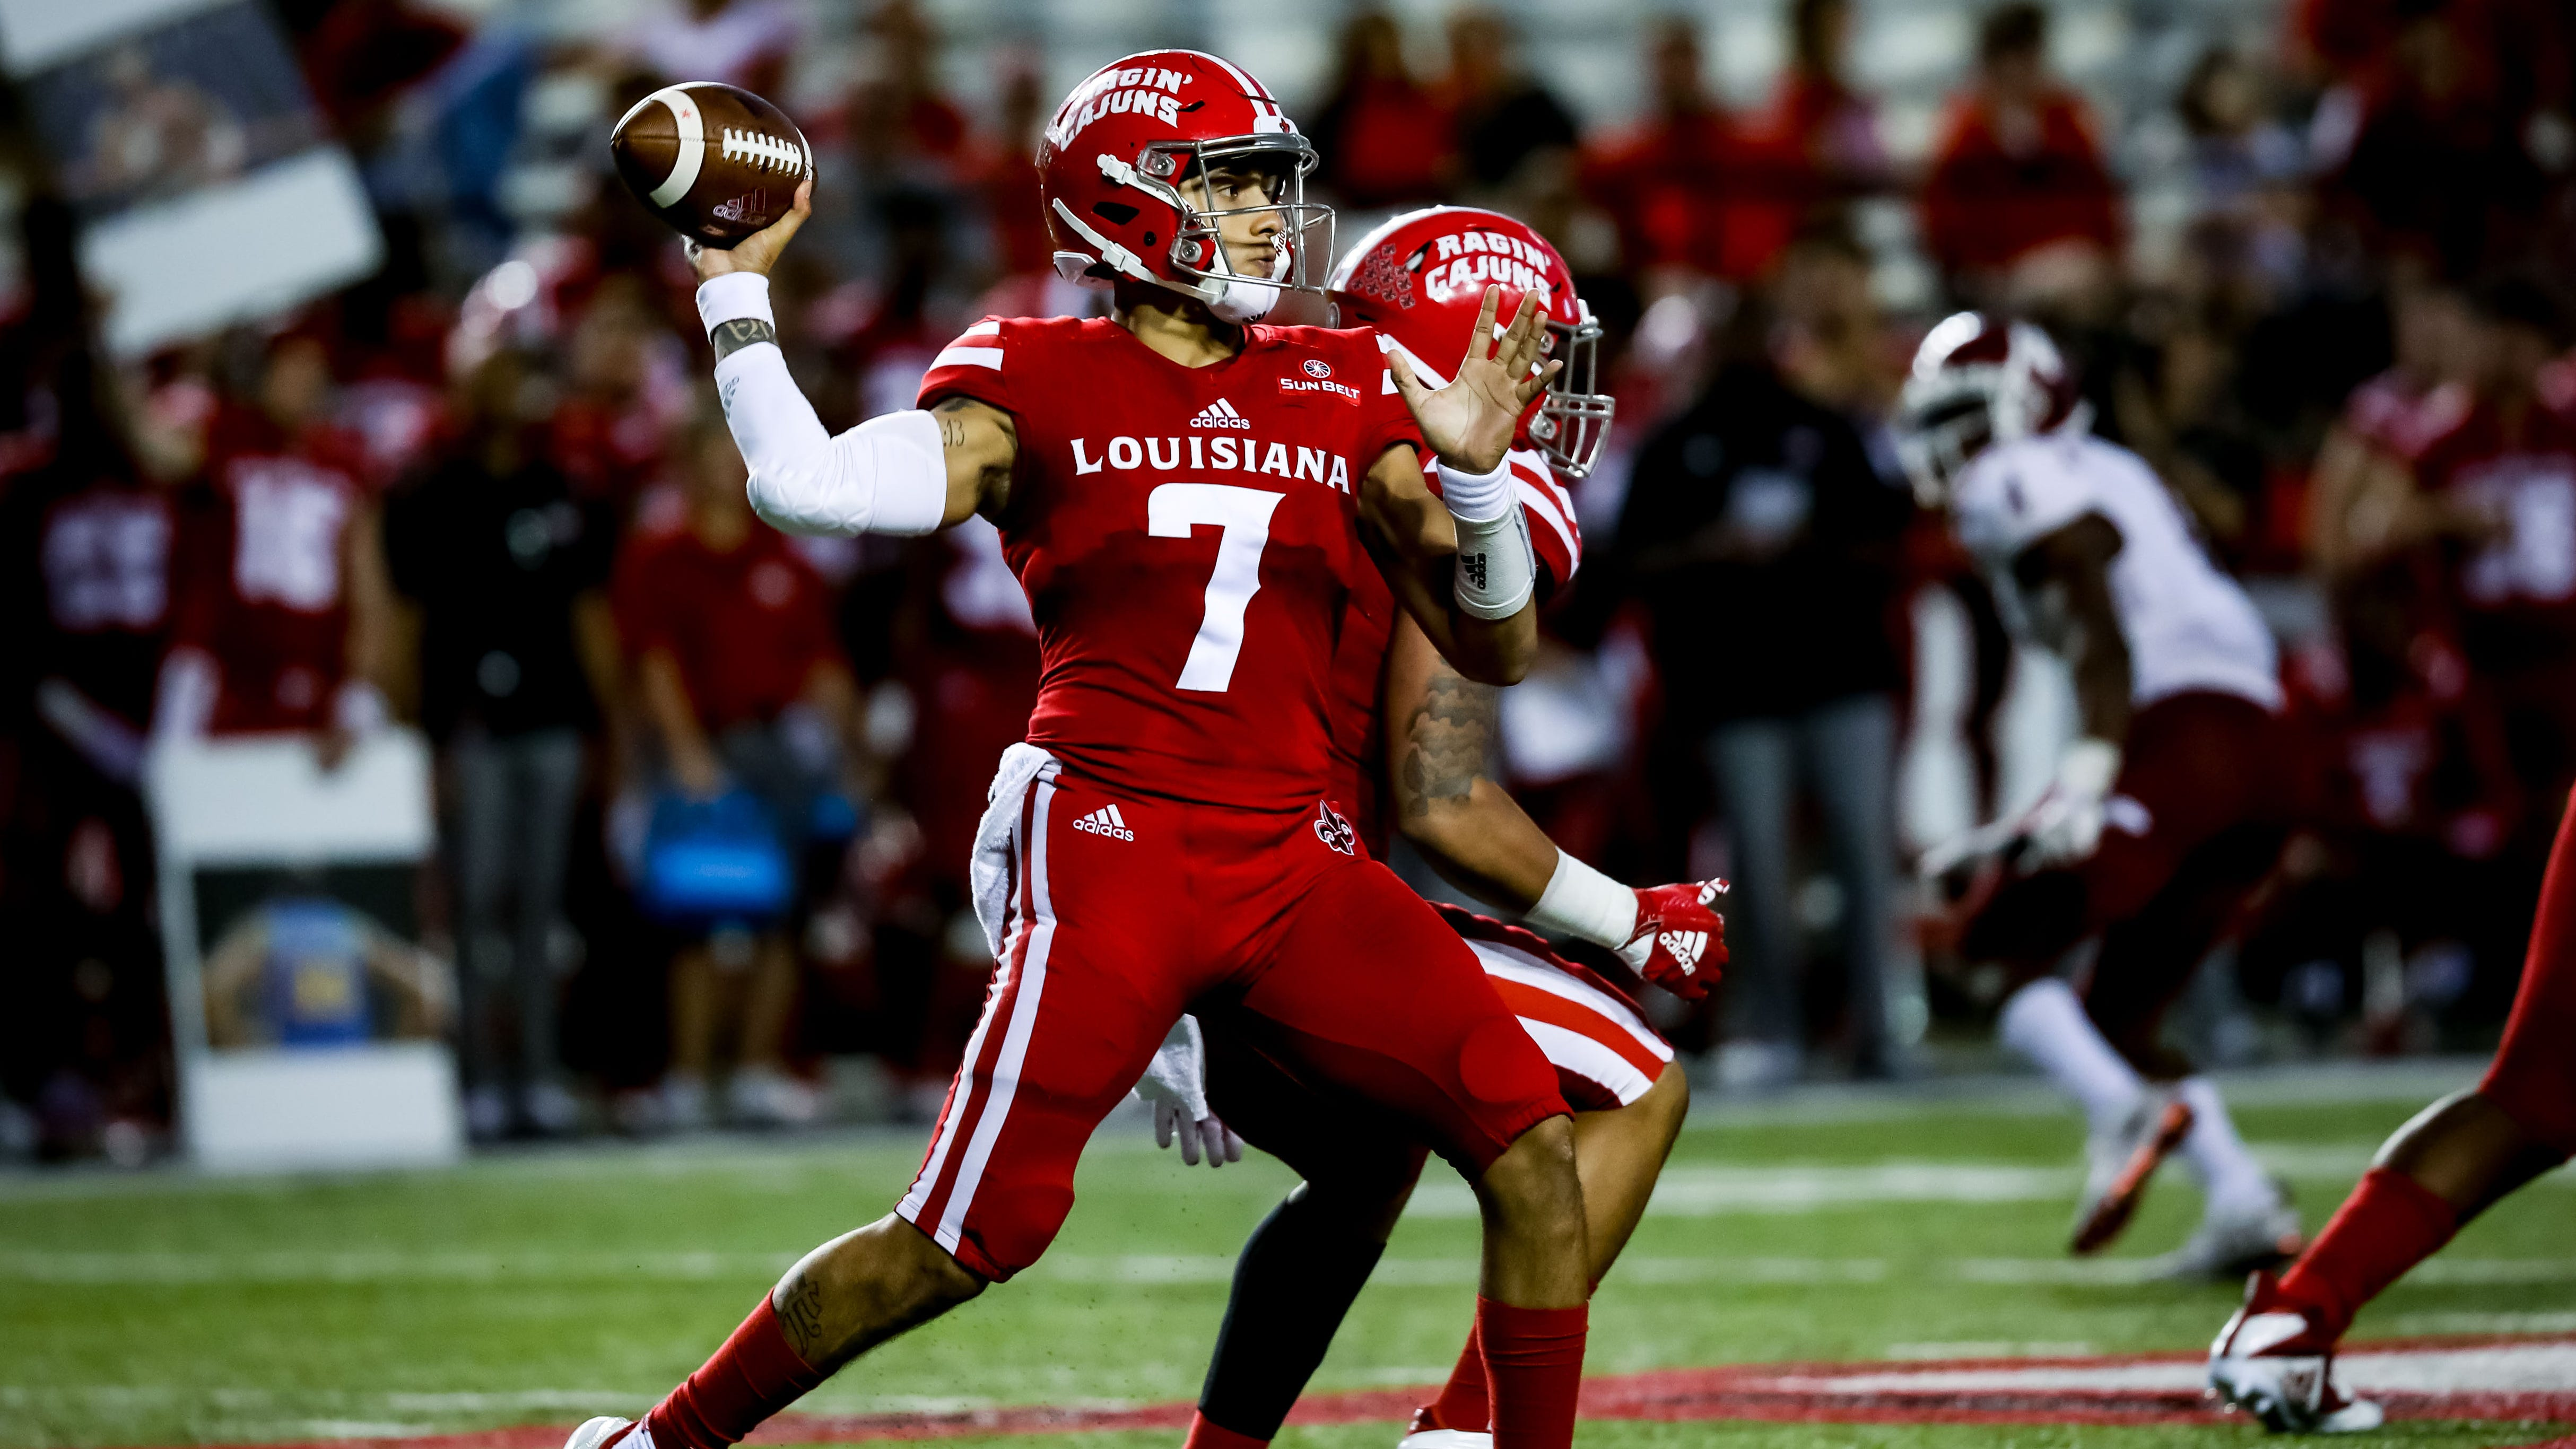 UL QB Andre Nunez looks downfield for a receiver in the football game between UL and New Mexico State University at Cajun Field in Lafayette, Louisiana on October 13, 2018.